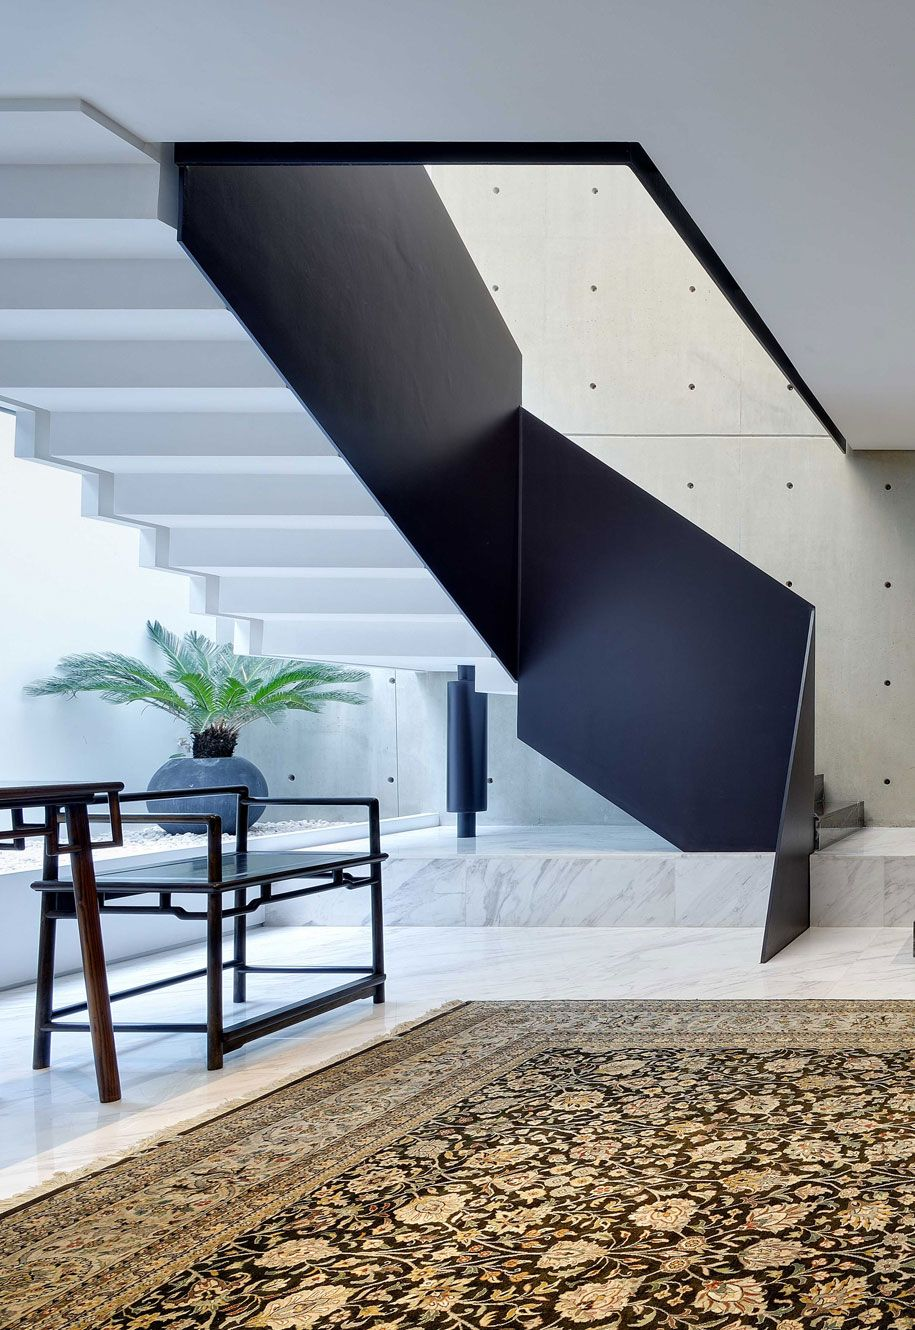 House with an Atrium by RT+Q Architects, Queenstown